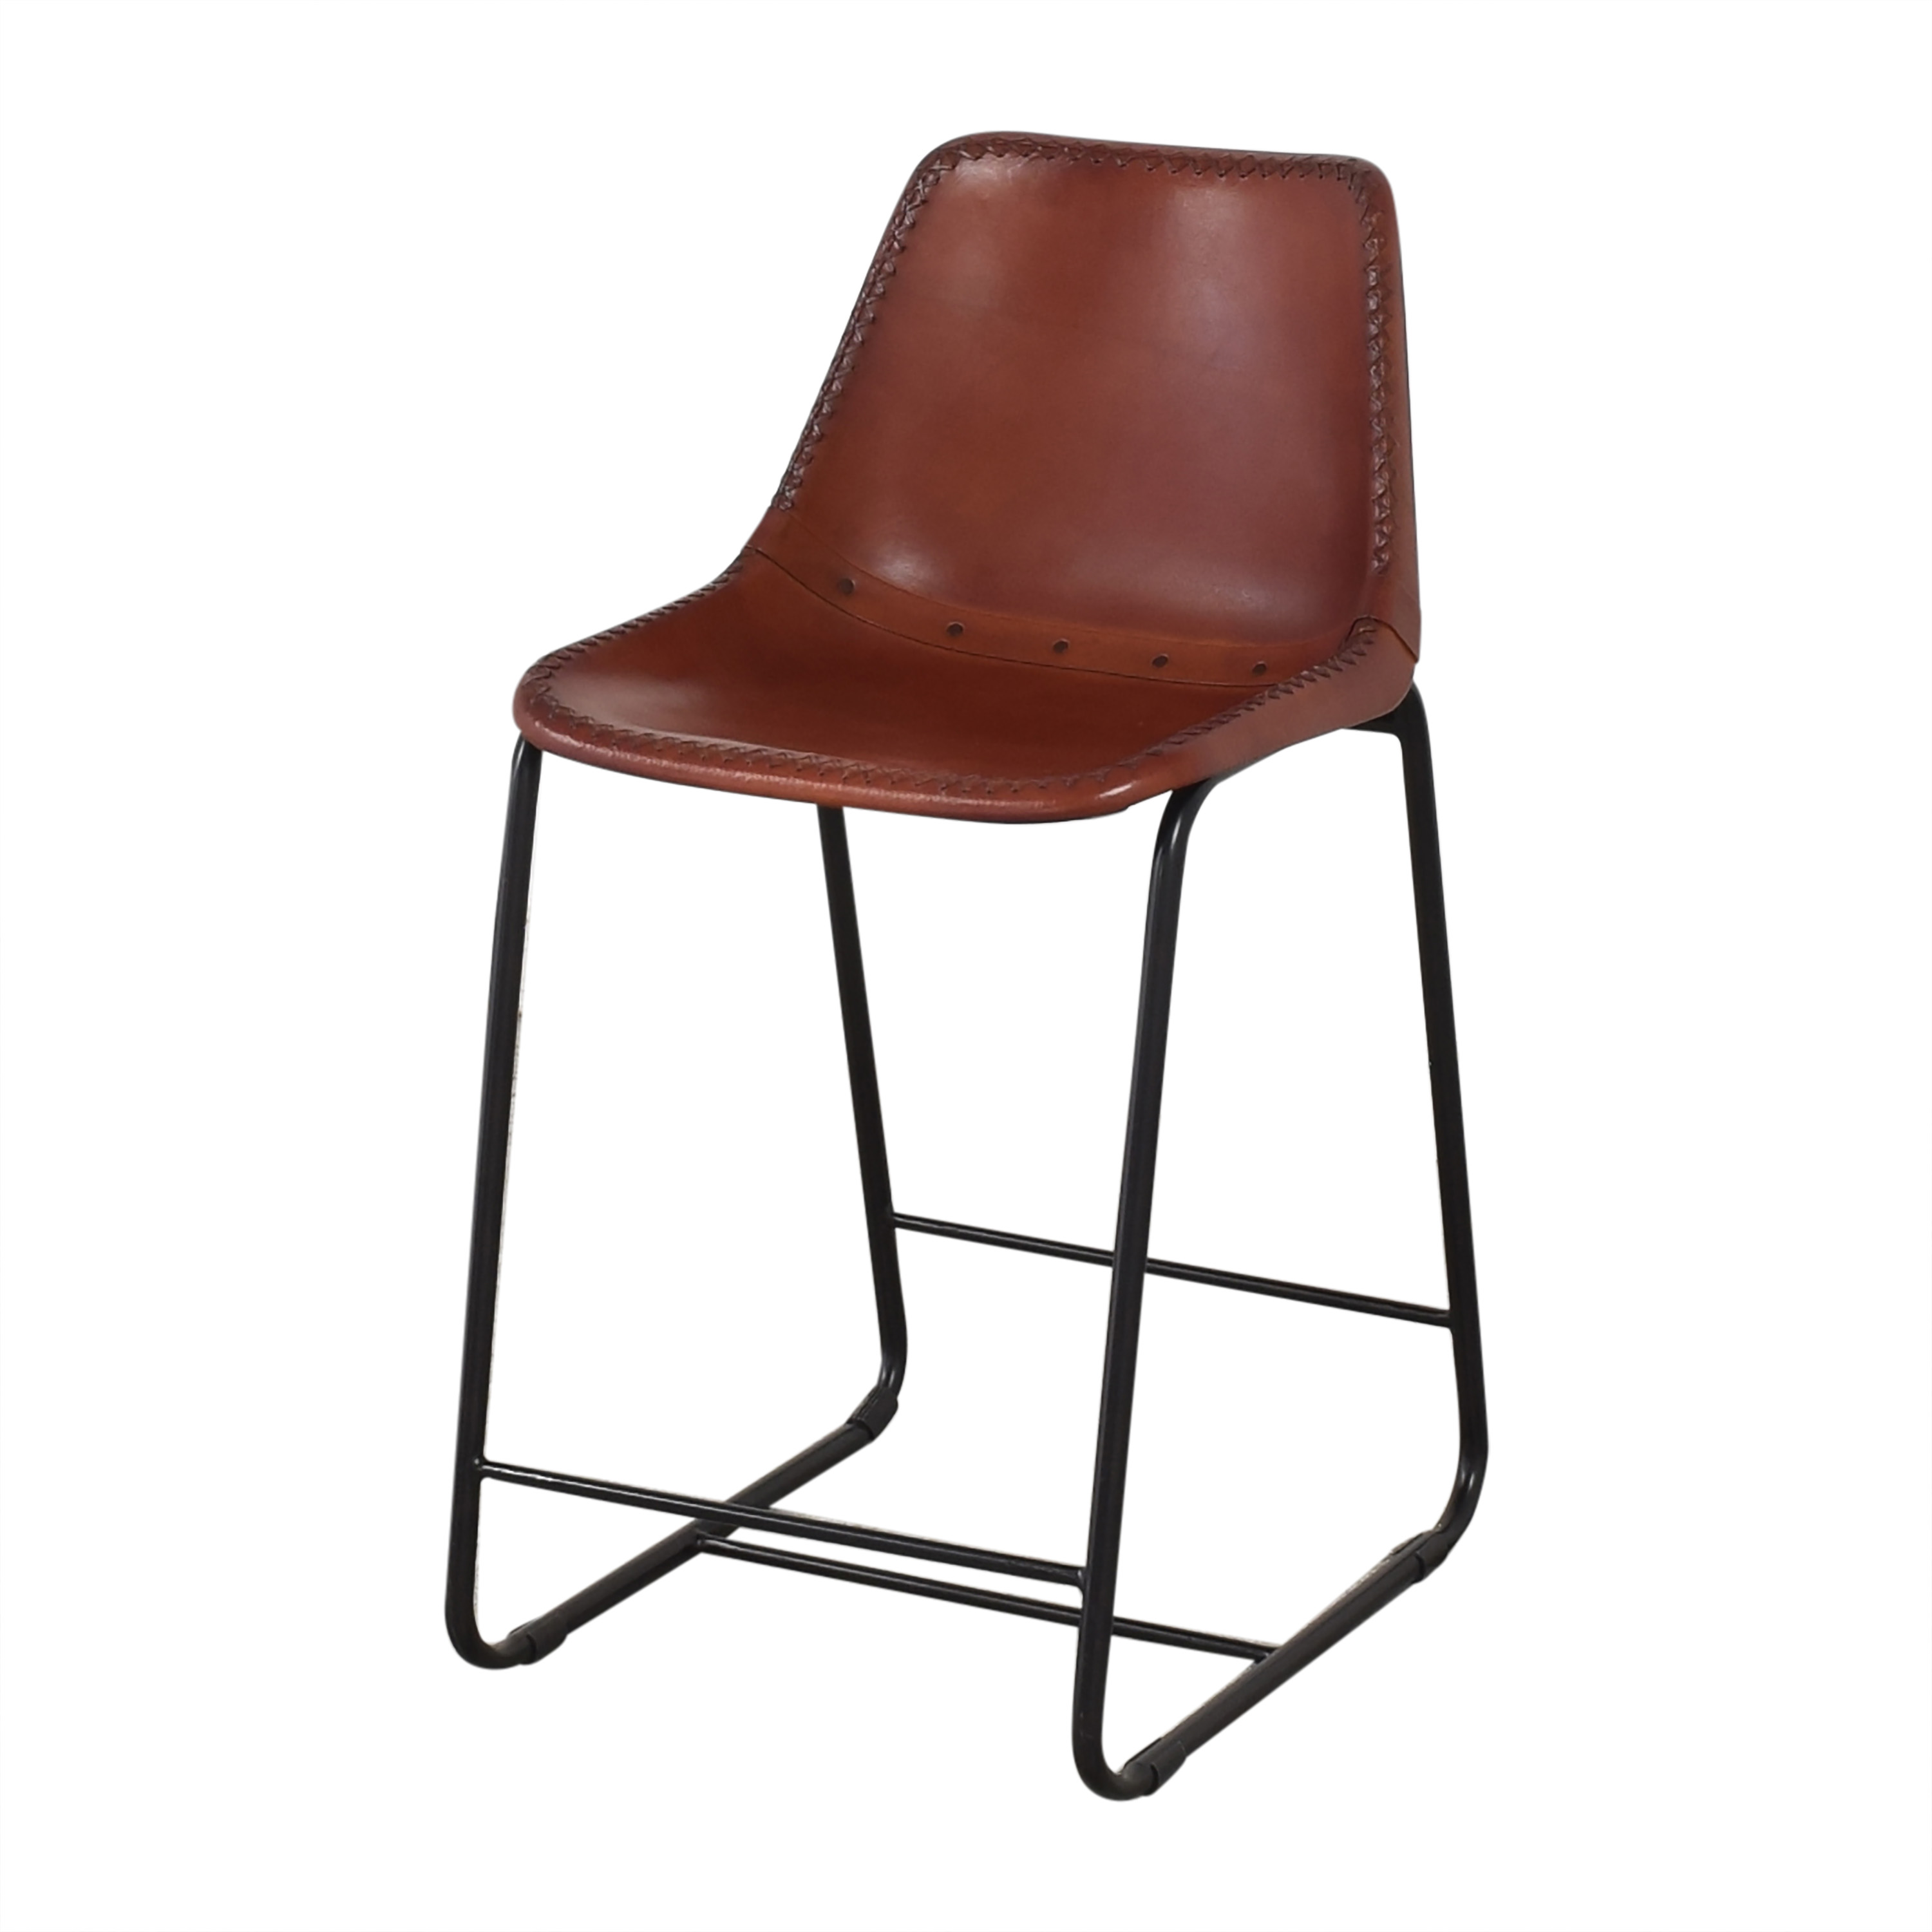 shop CB2 CB2 Roadhouse Counter Stools online